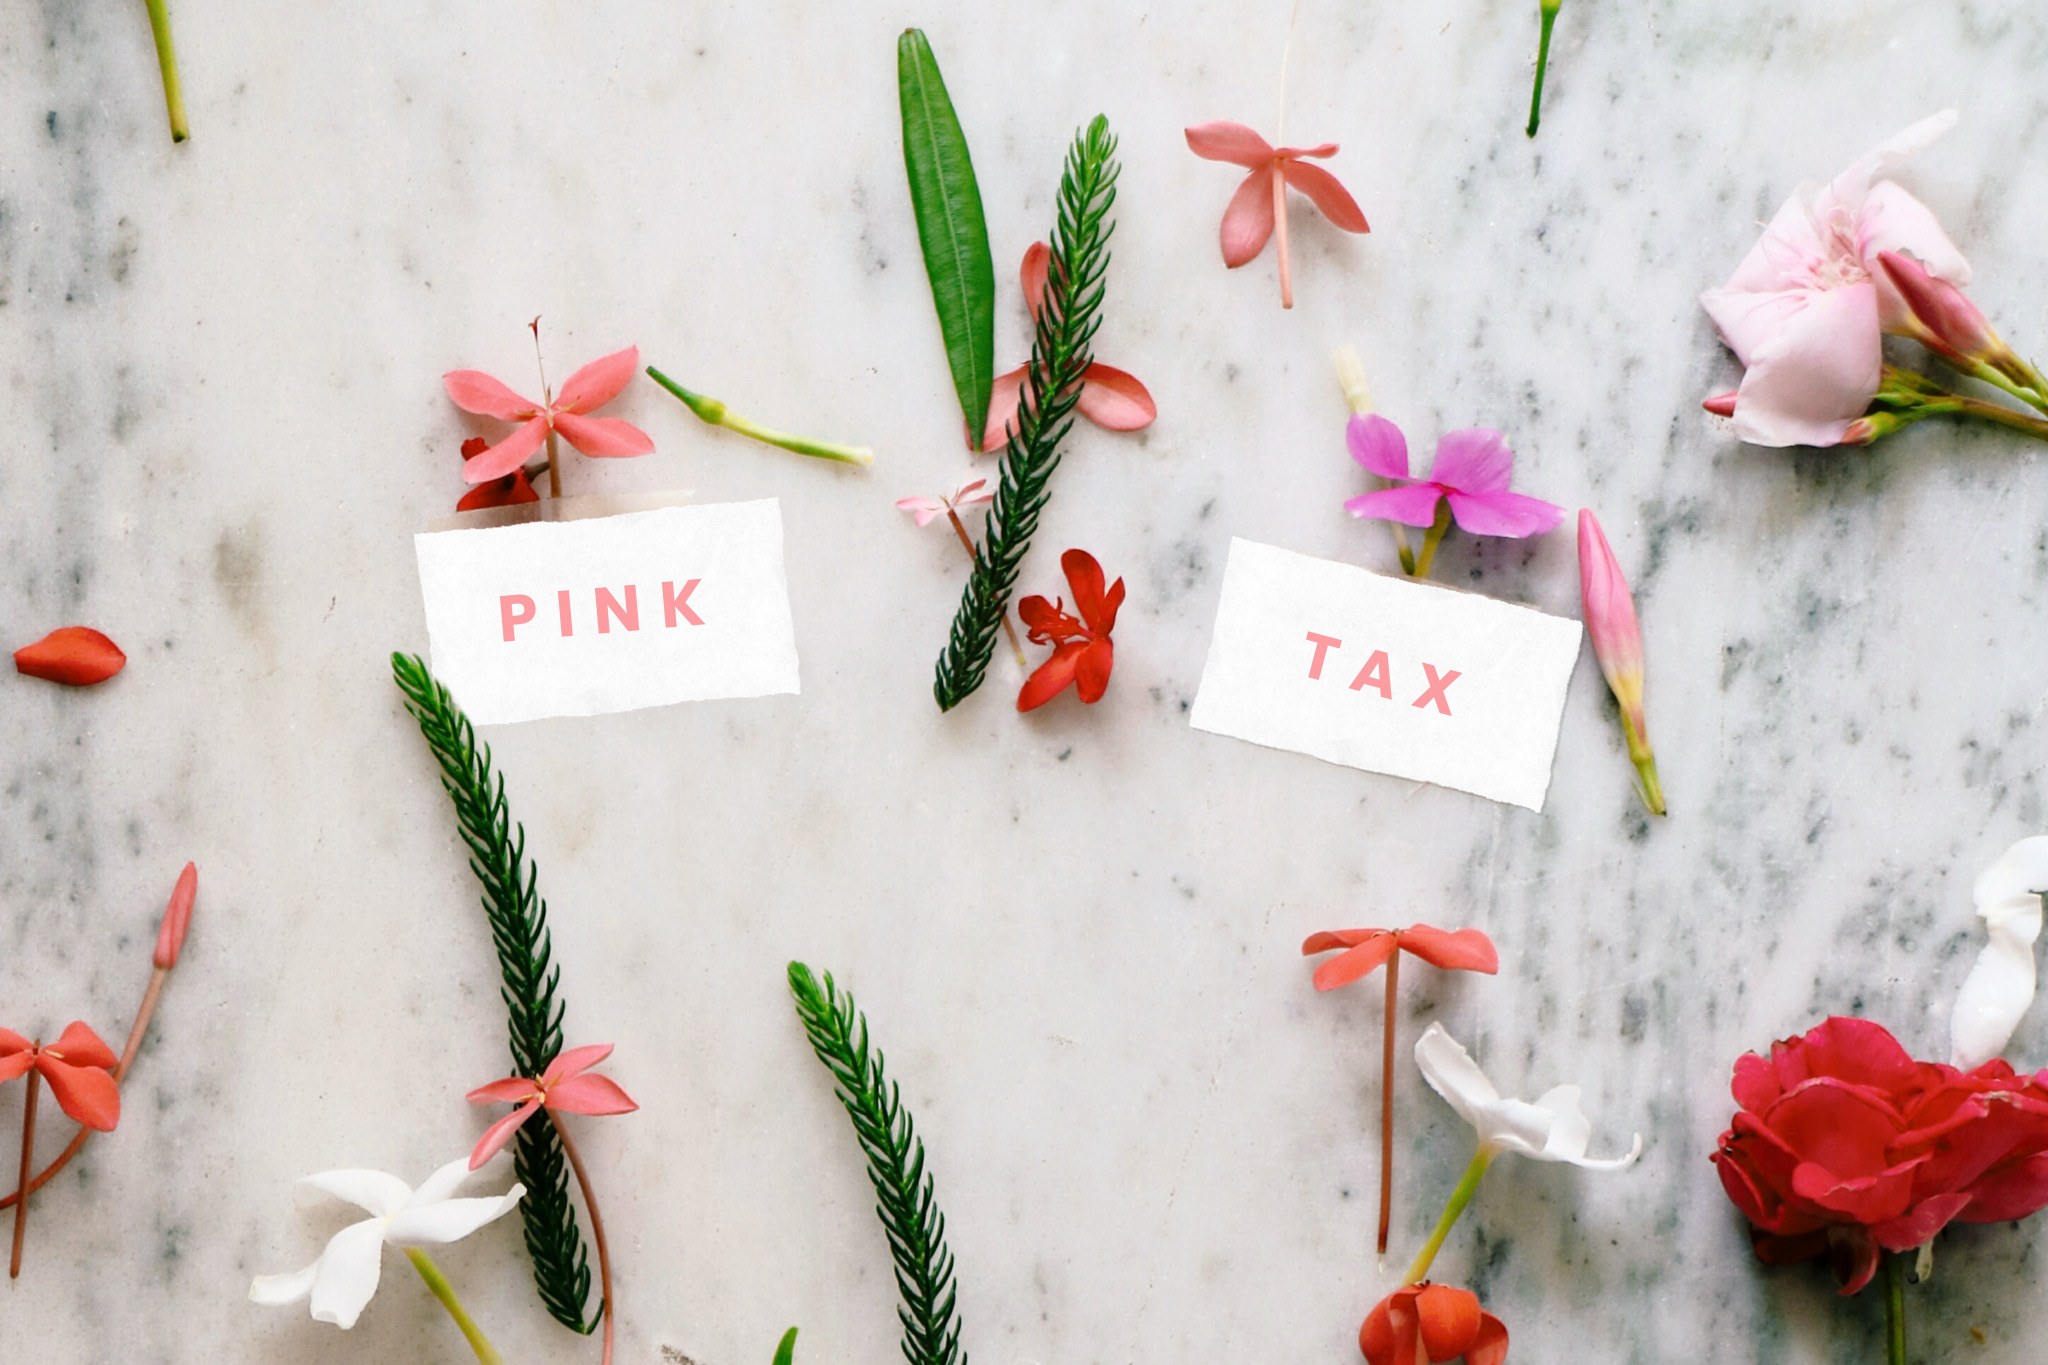 Do eco-friendly products have pink tax?